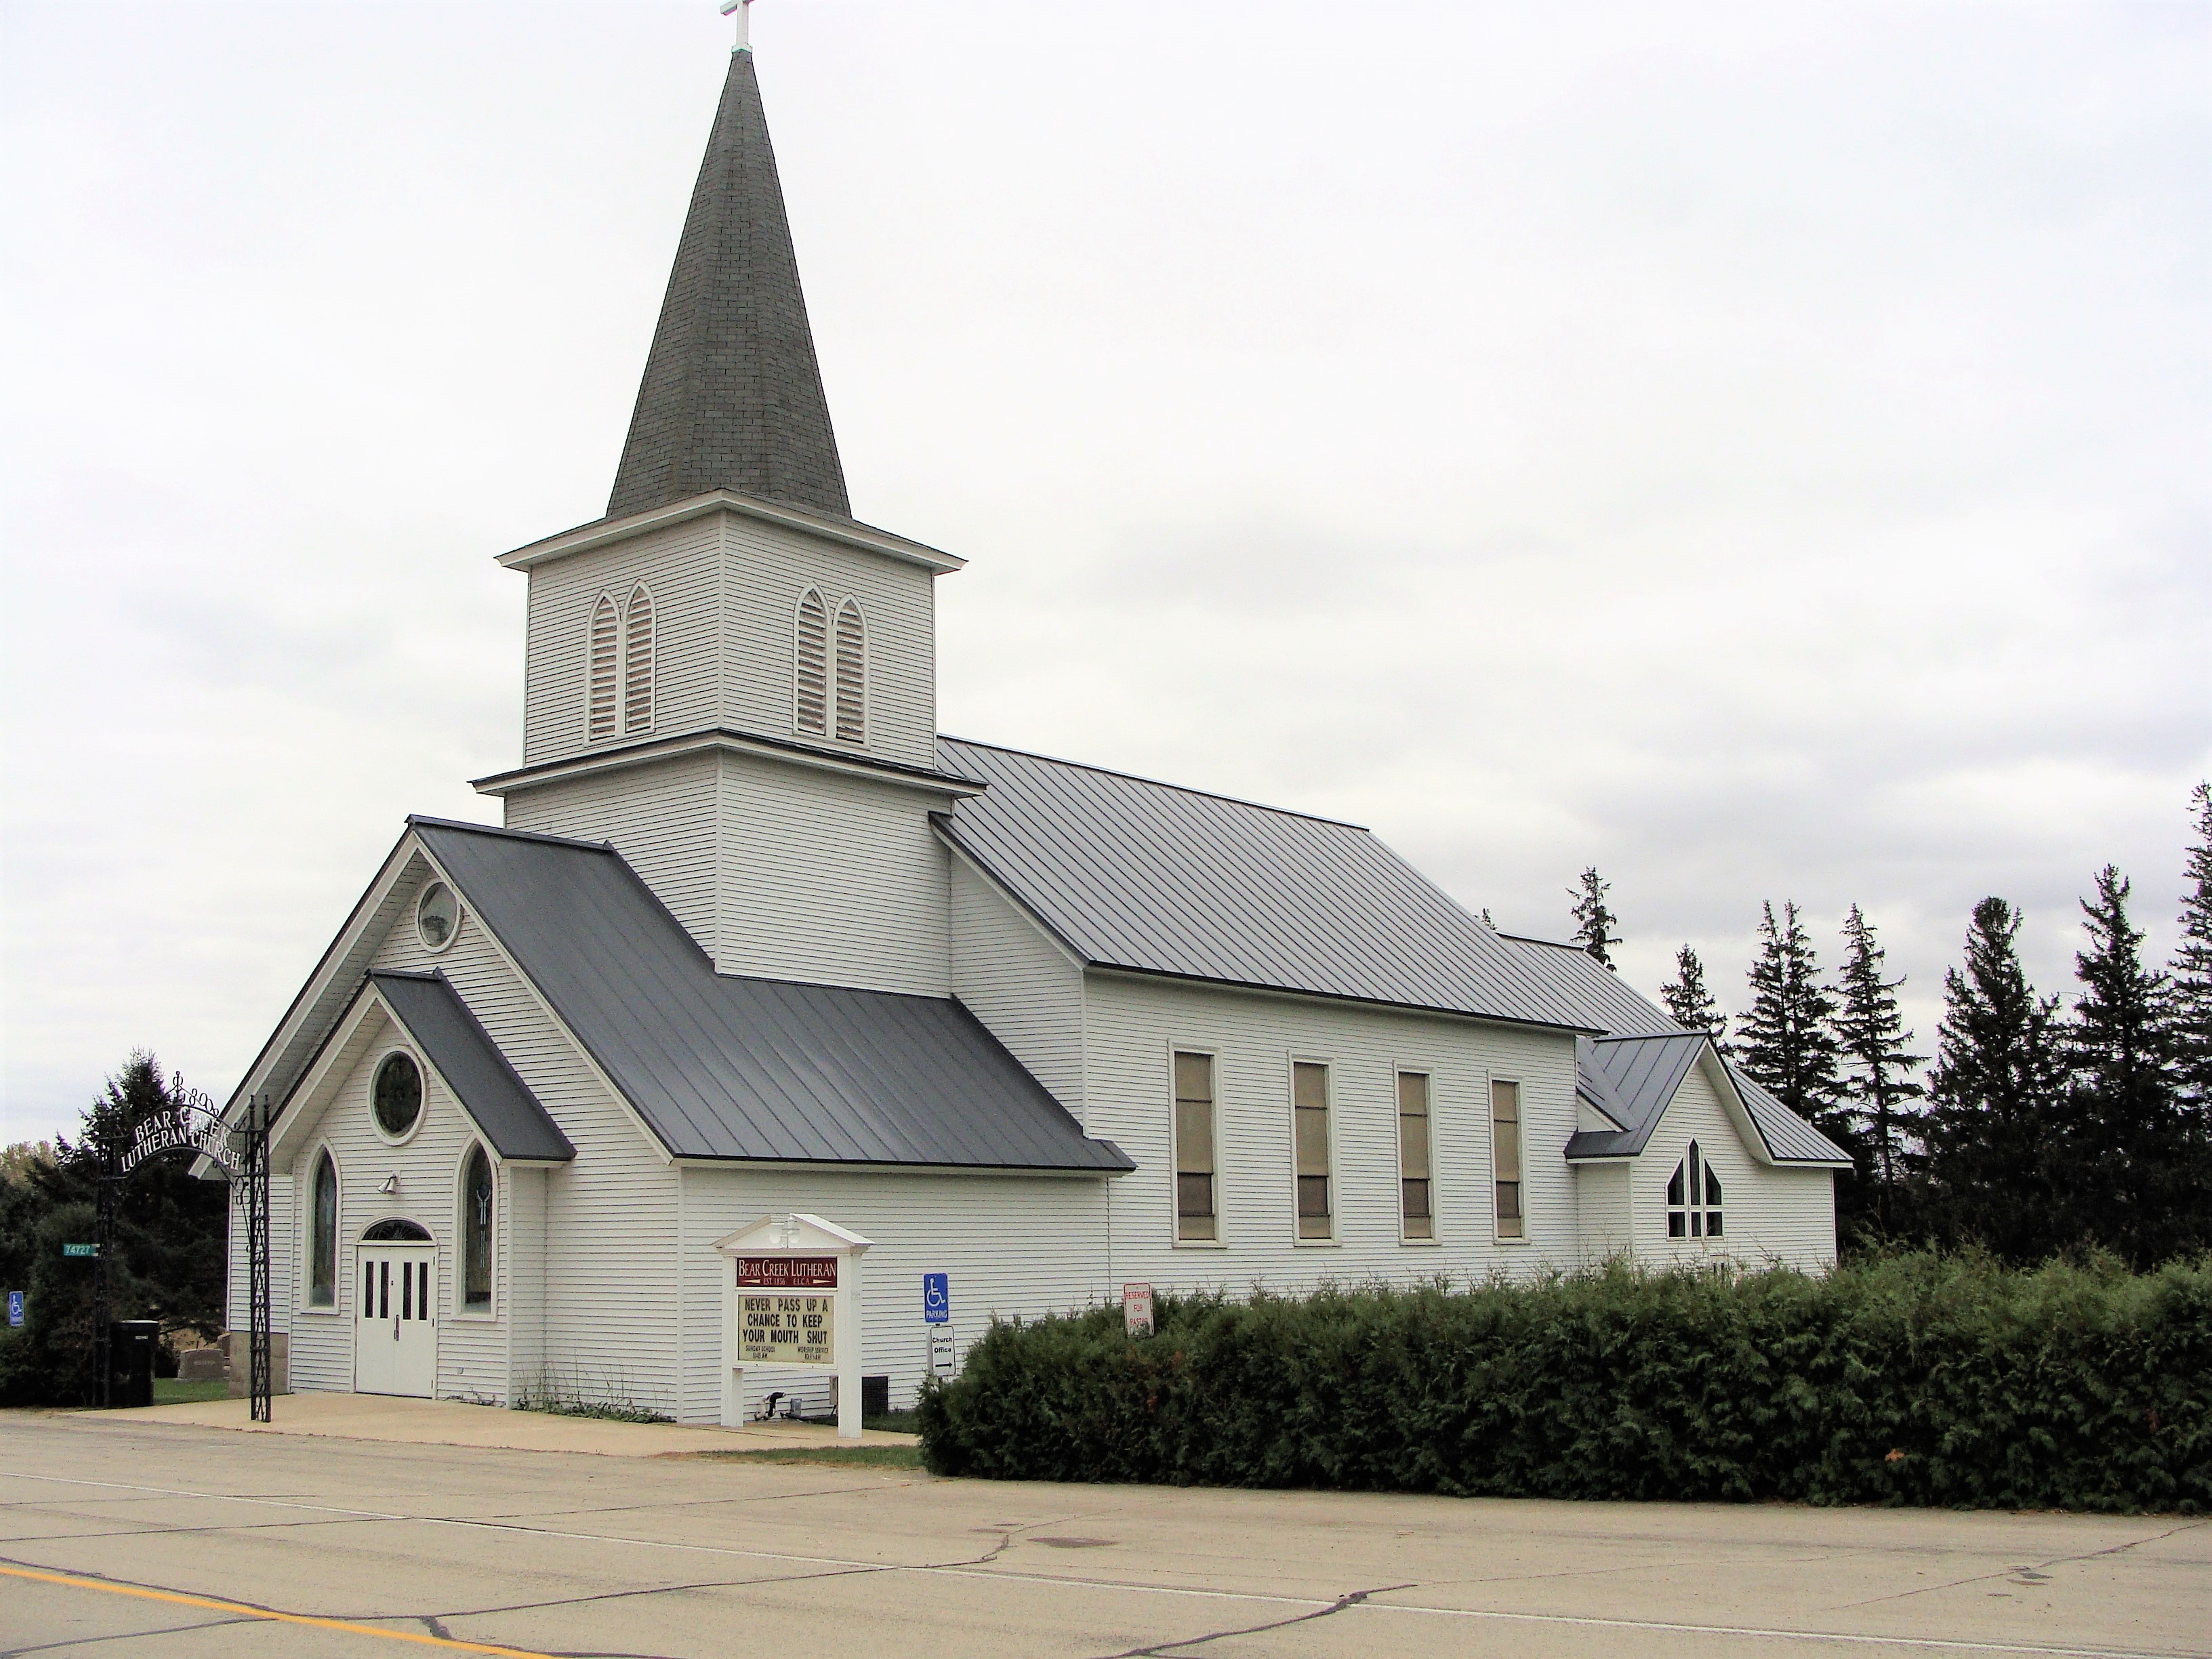 Standing seam sheet metal roofing light grey silver cityscape bear creek lutheran church grand meadow minnesota commercial illinois wisconsin iowa north dakota